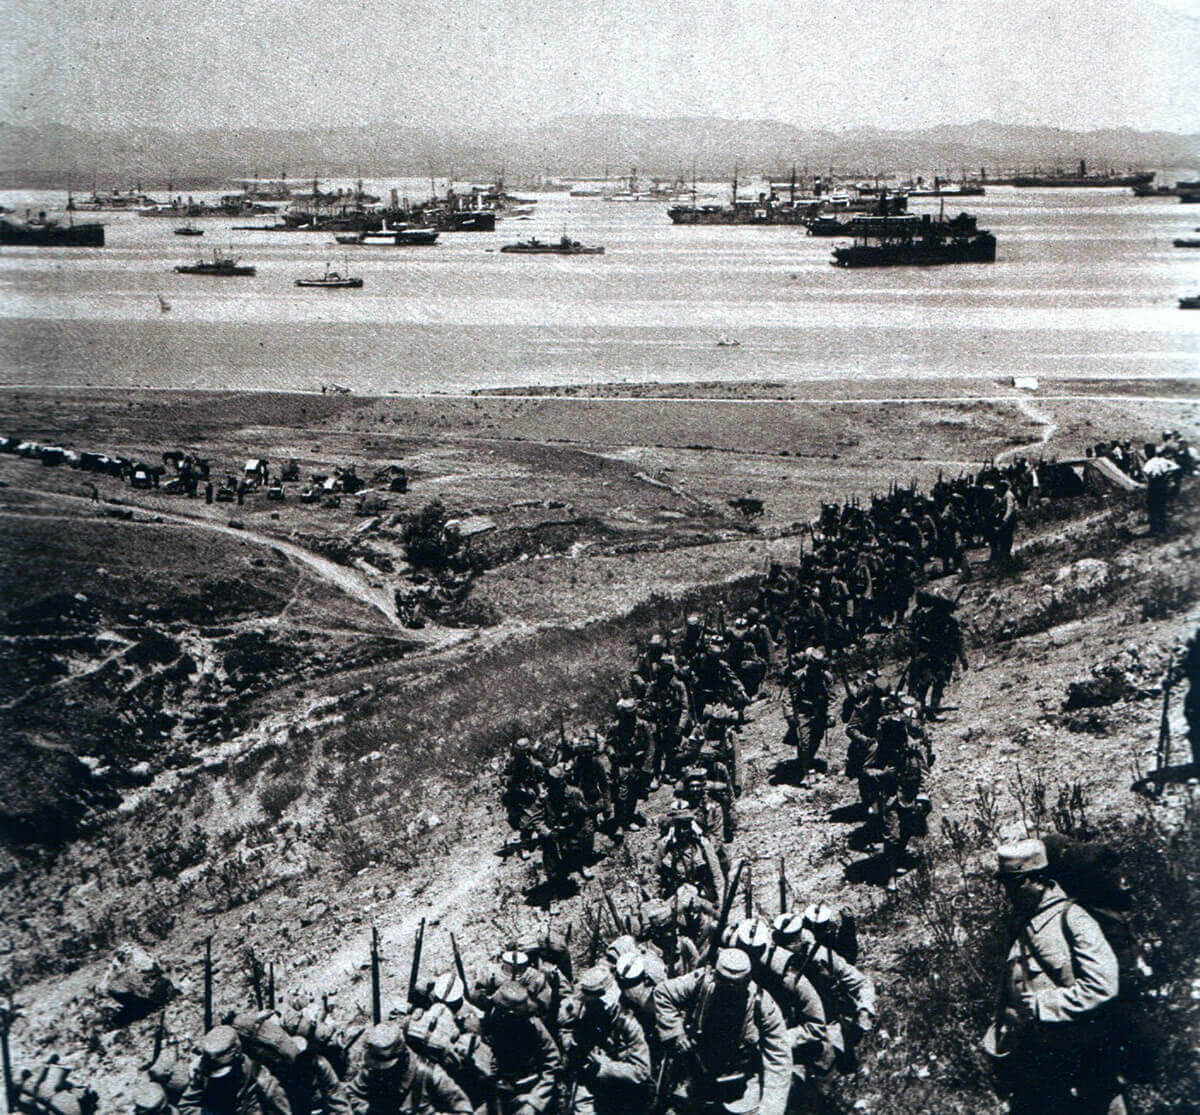 French troops training on the Greek Island of Lemnos before leaving for the landing on the Gallipoli Peninsula: Gallipoli Part II, March 1915 to January 1916 in the First World War